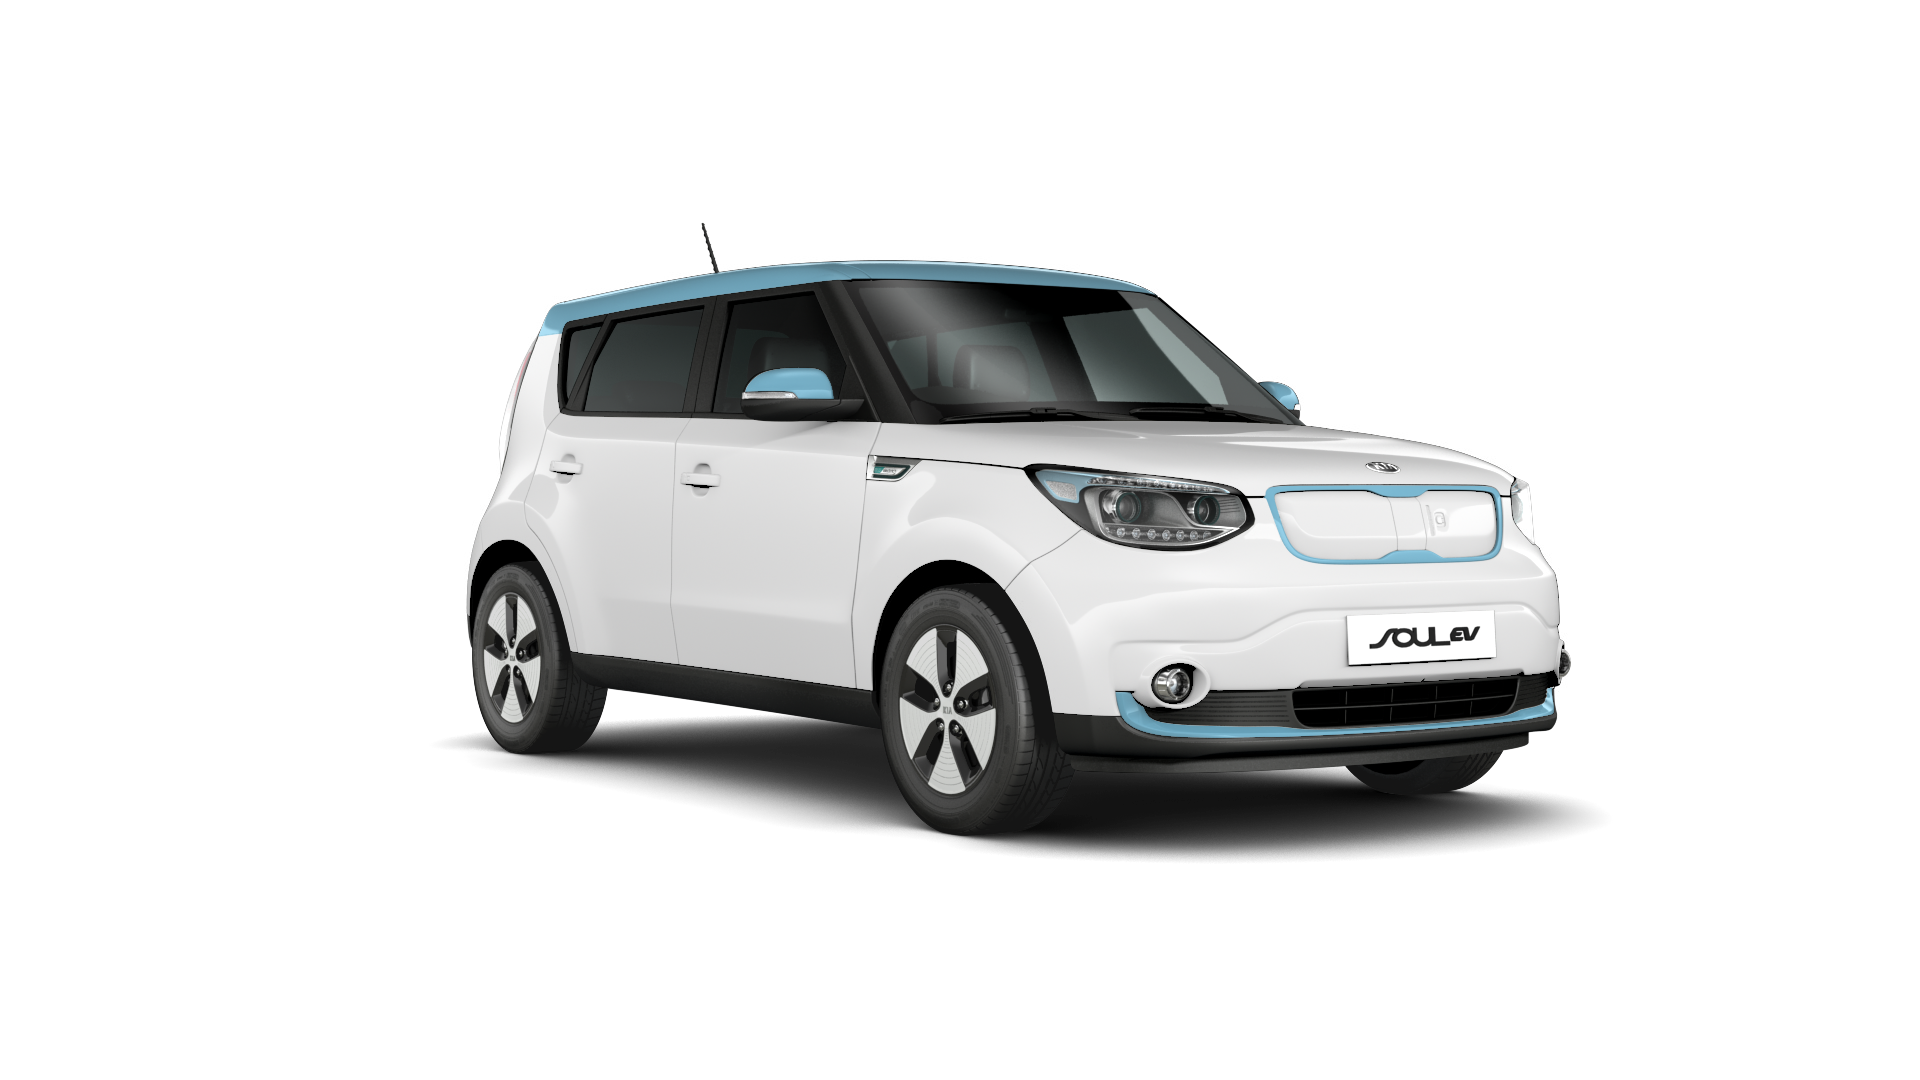 why ev blog black kia matters it soul